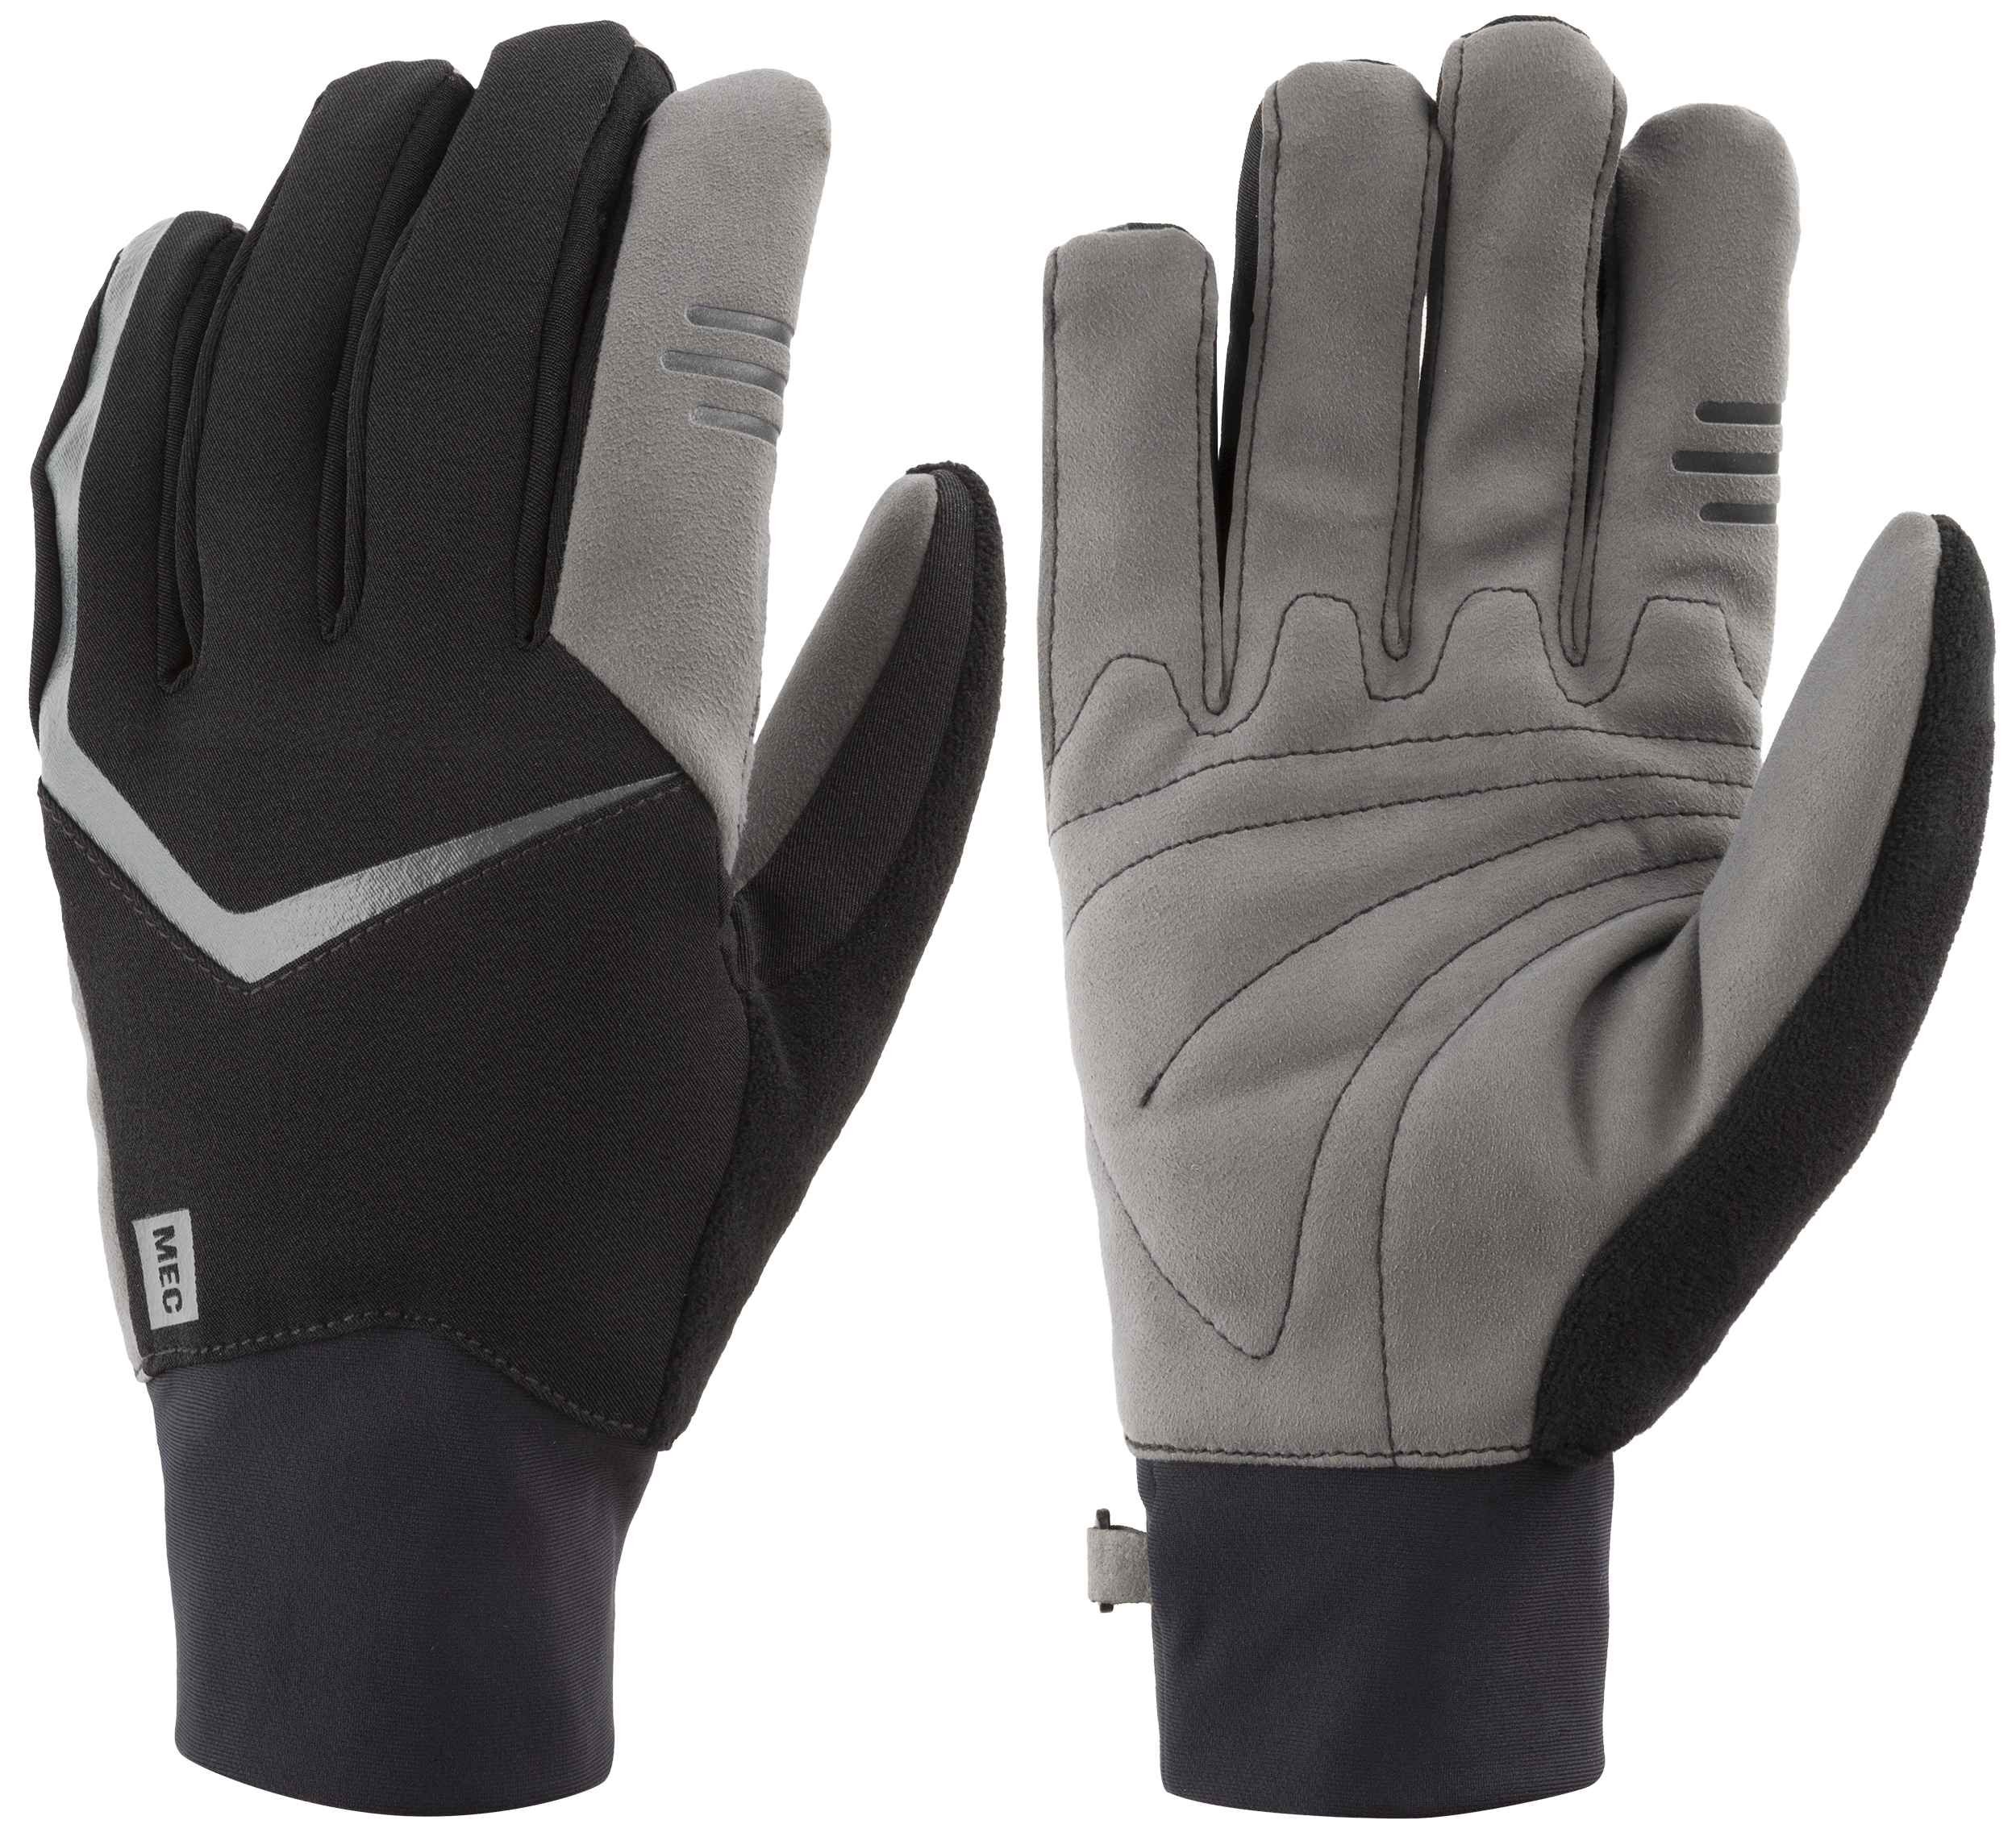 Driving gloves london ontario - Glide Xc Midweight Gloves Black Dark Grey